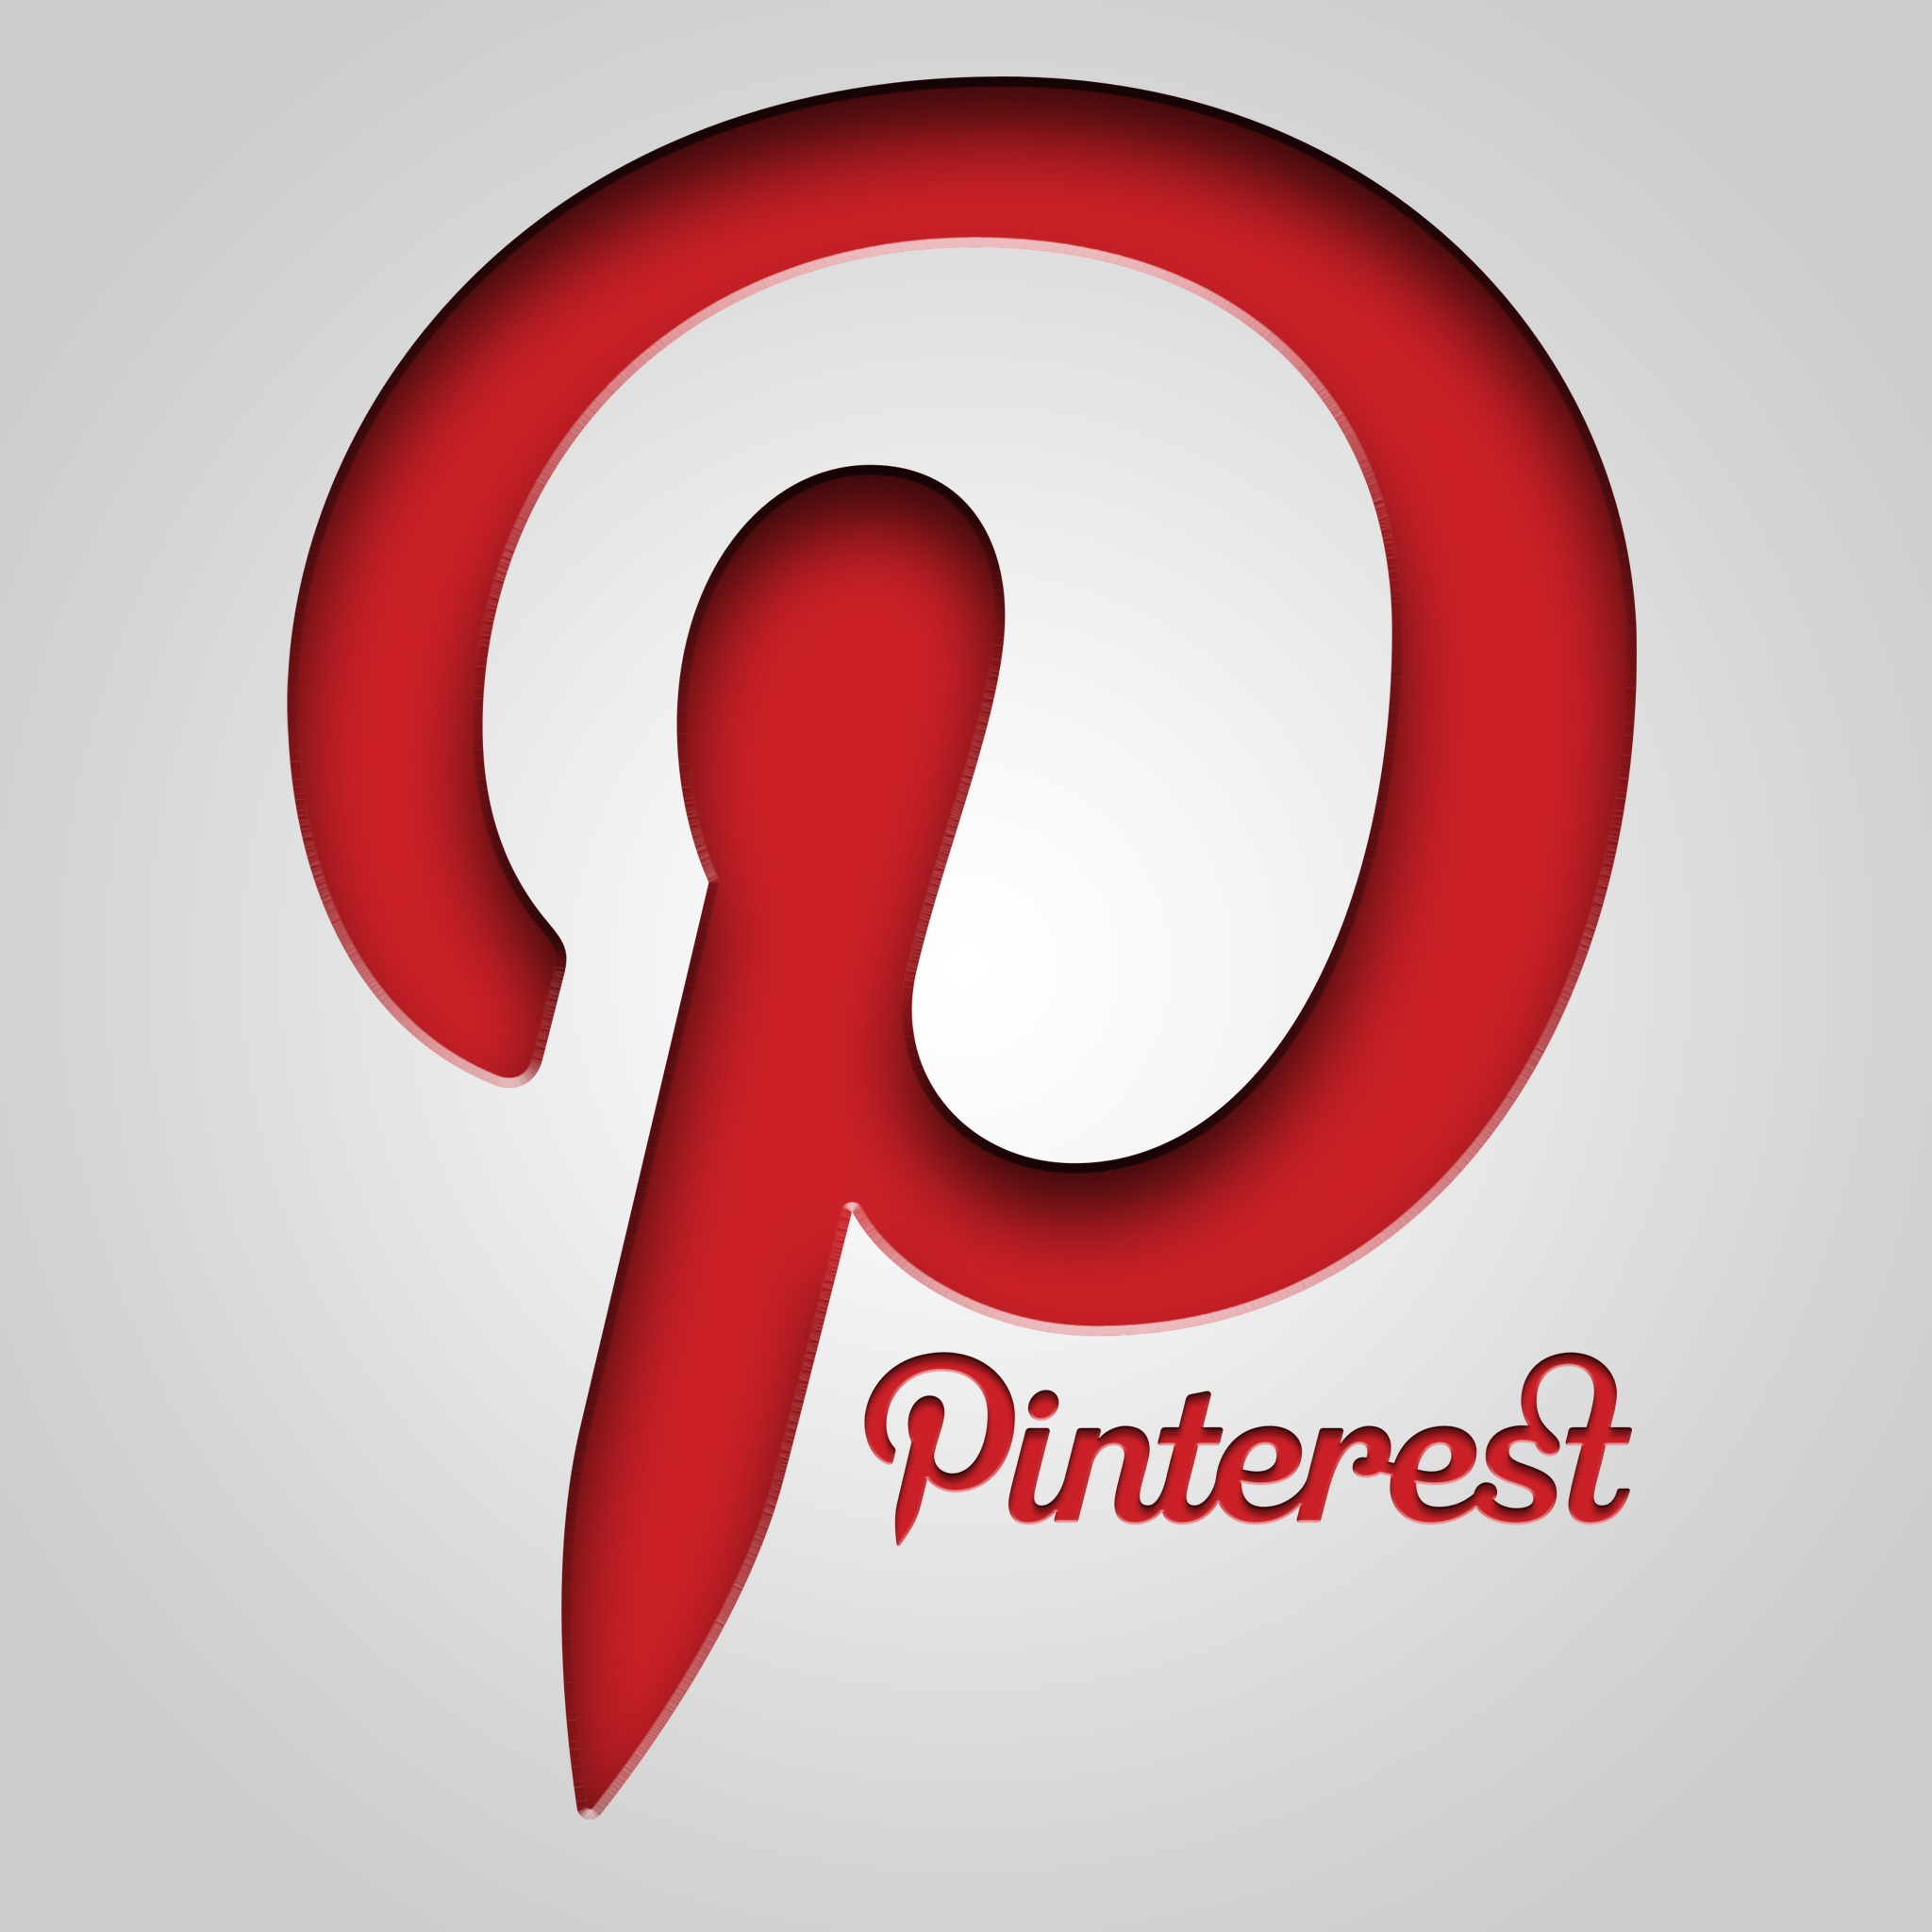 Pinterest-square-logo